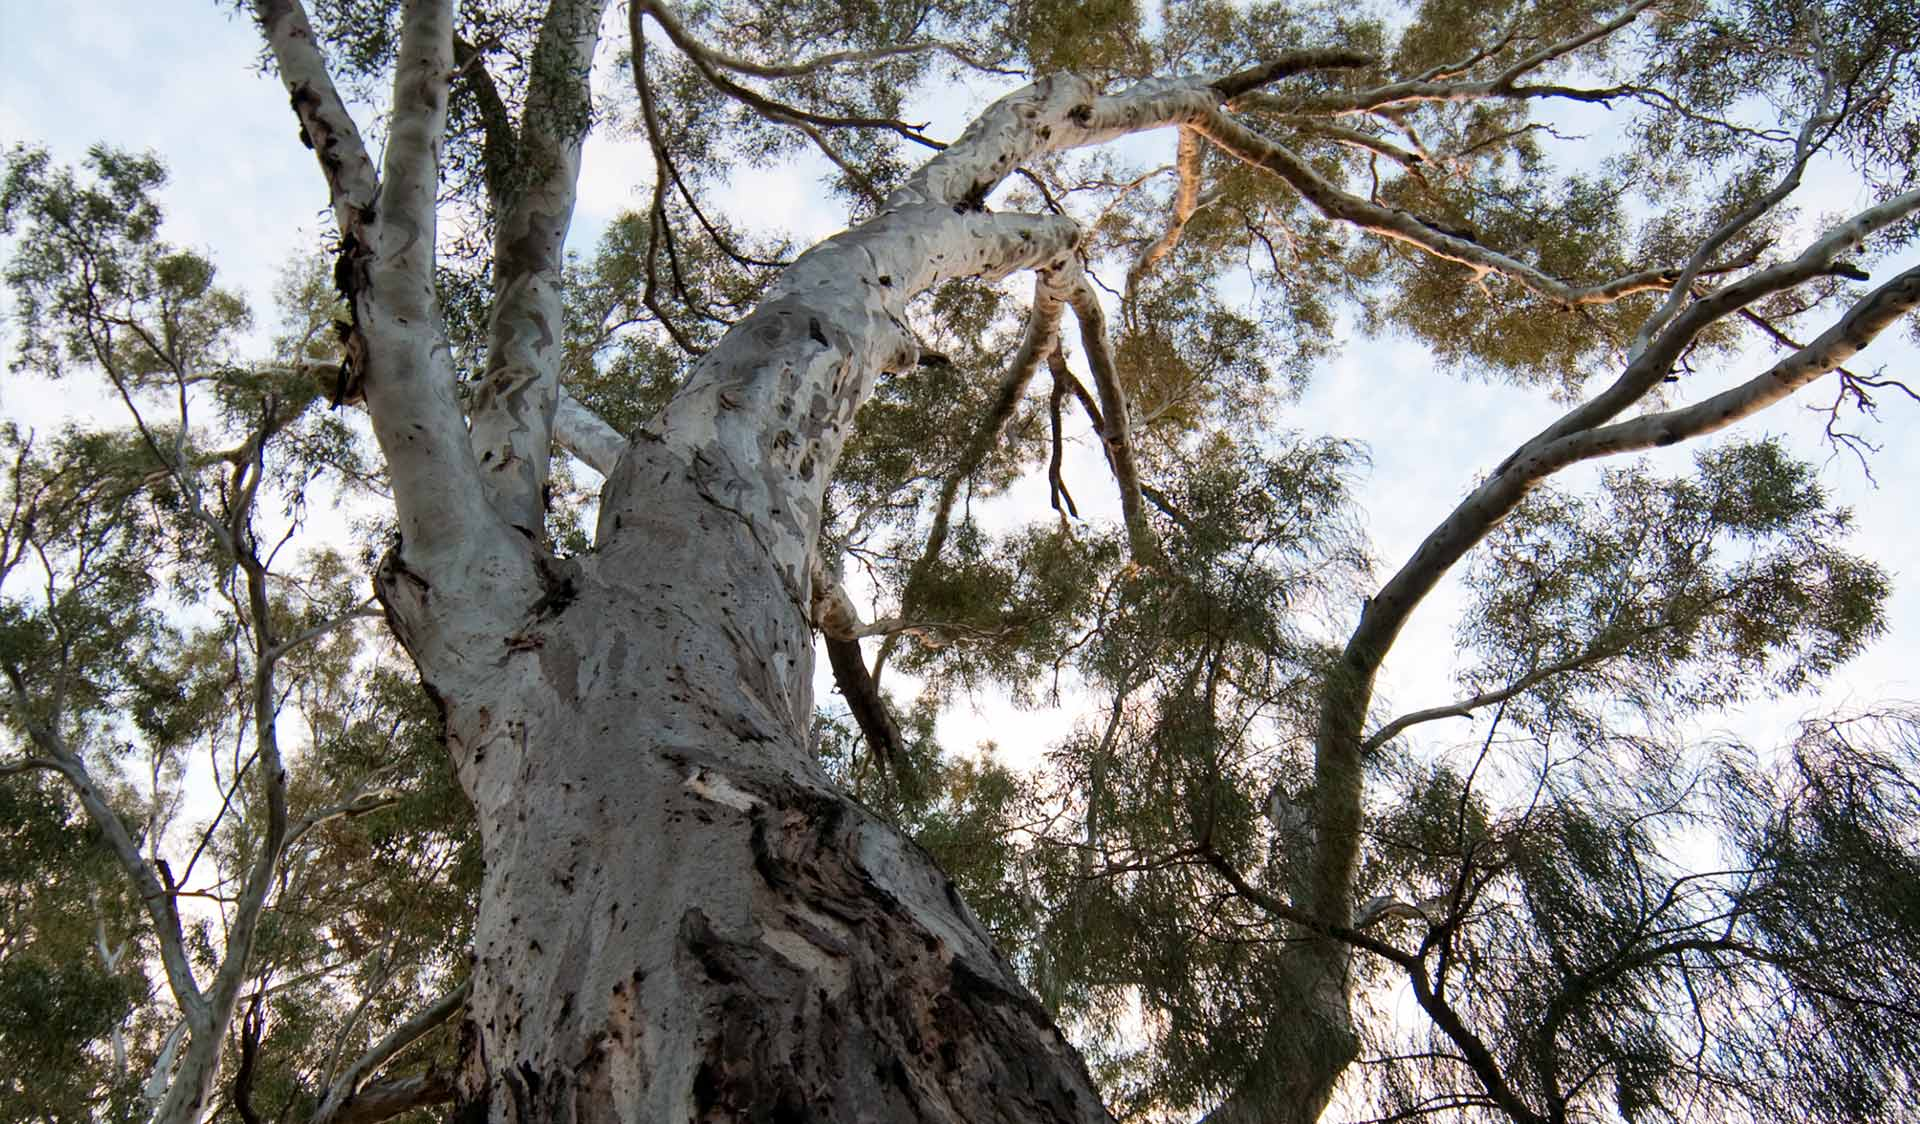 Photo looking up at a gum tree